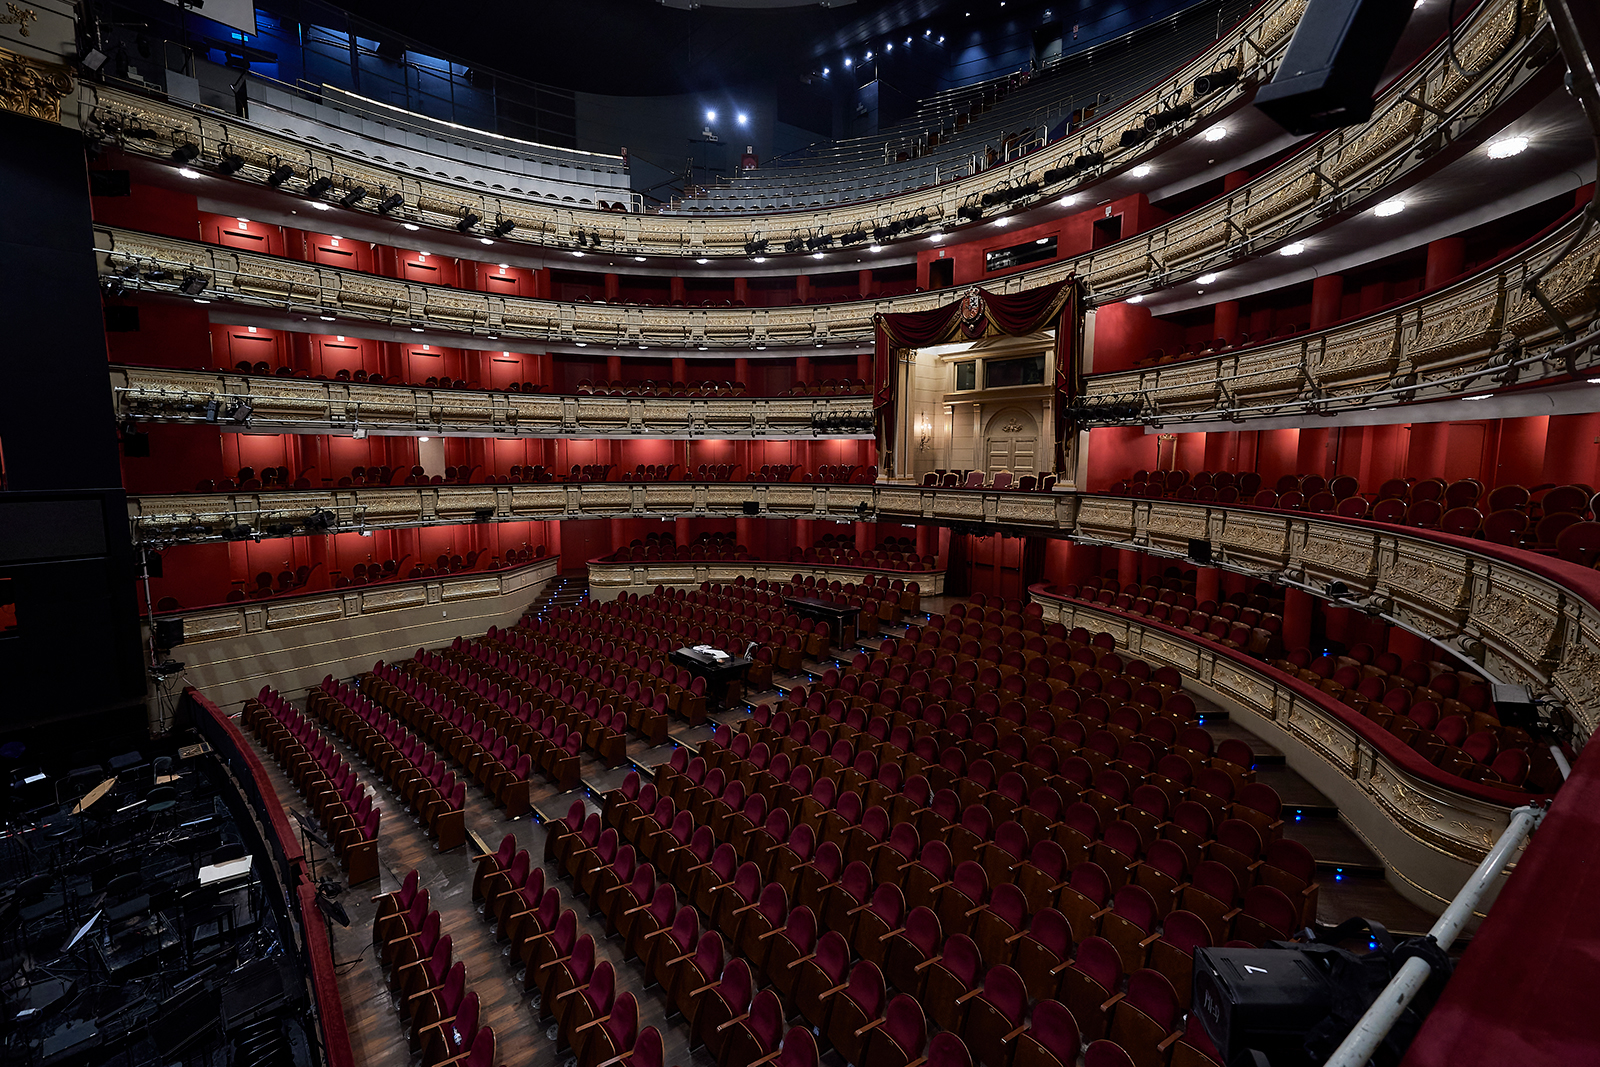 A general view of the Teatro Real, in Madrid, Spain, on March 13.